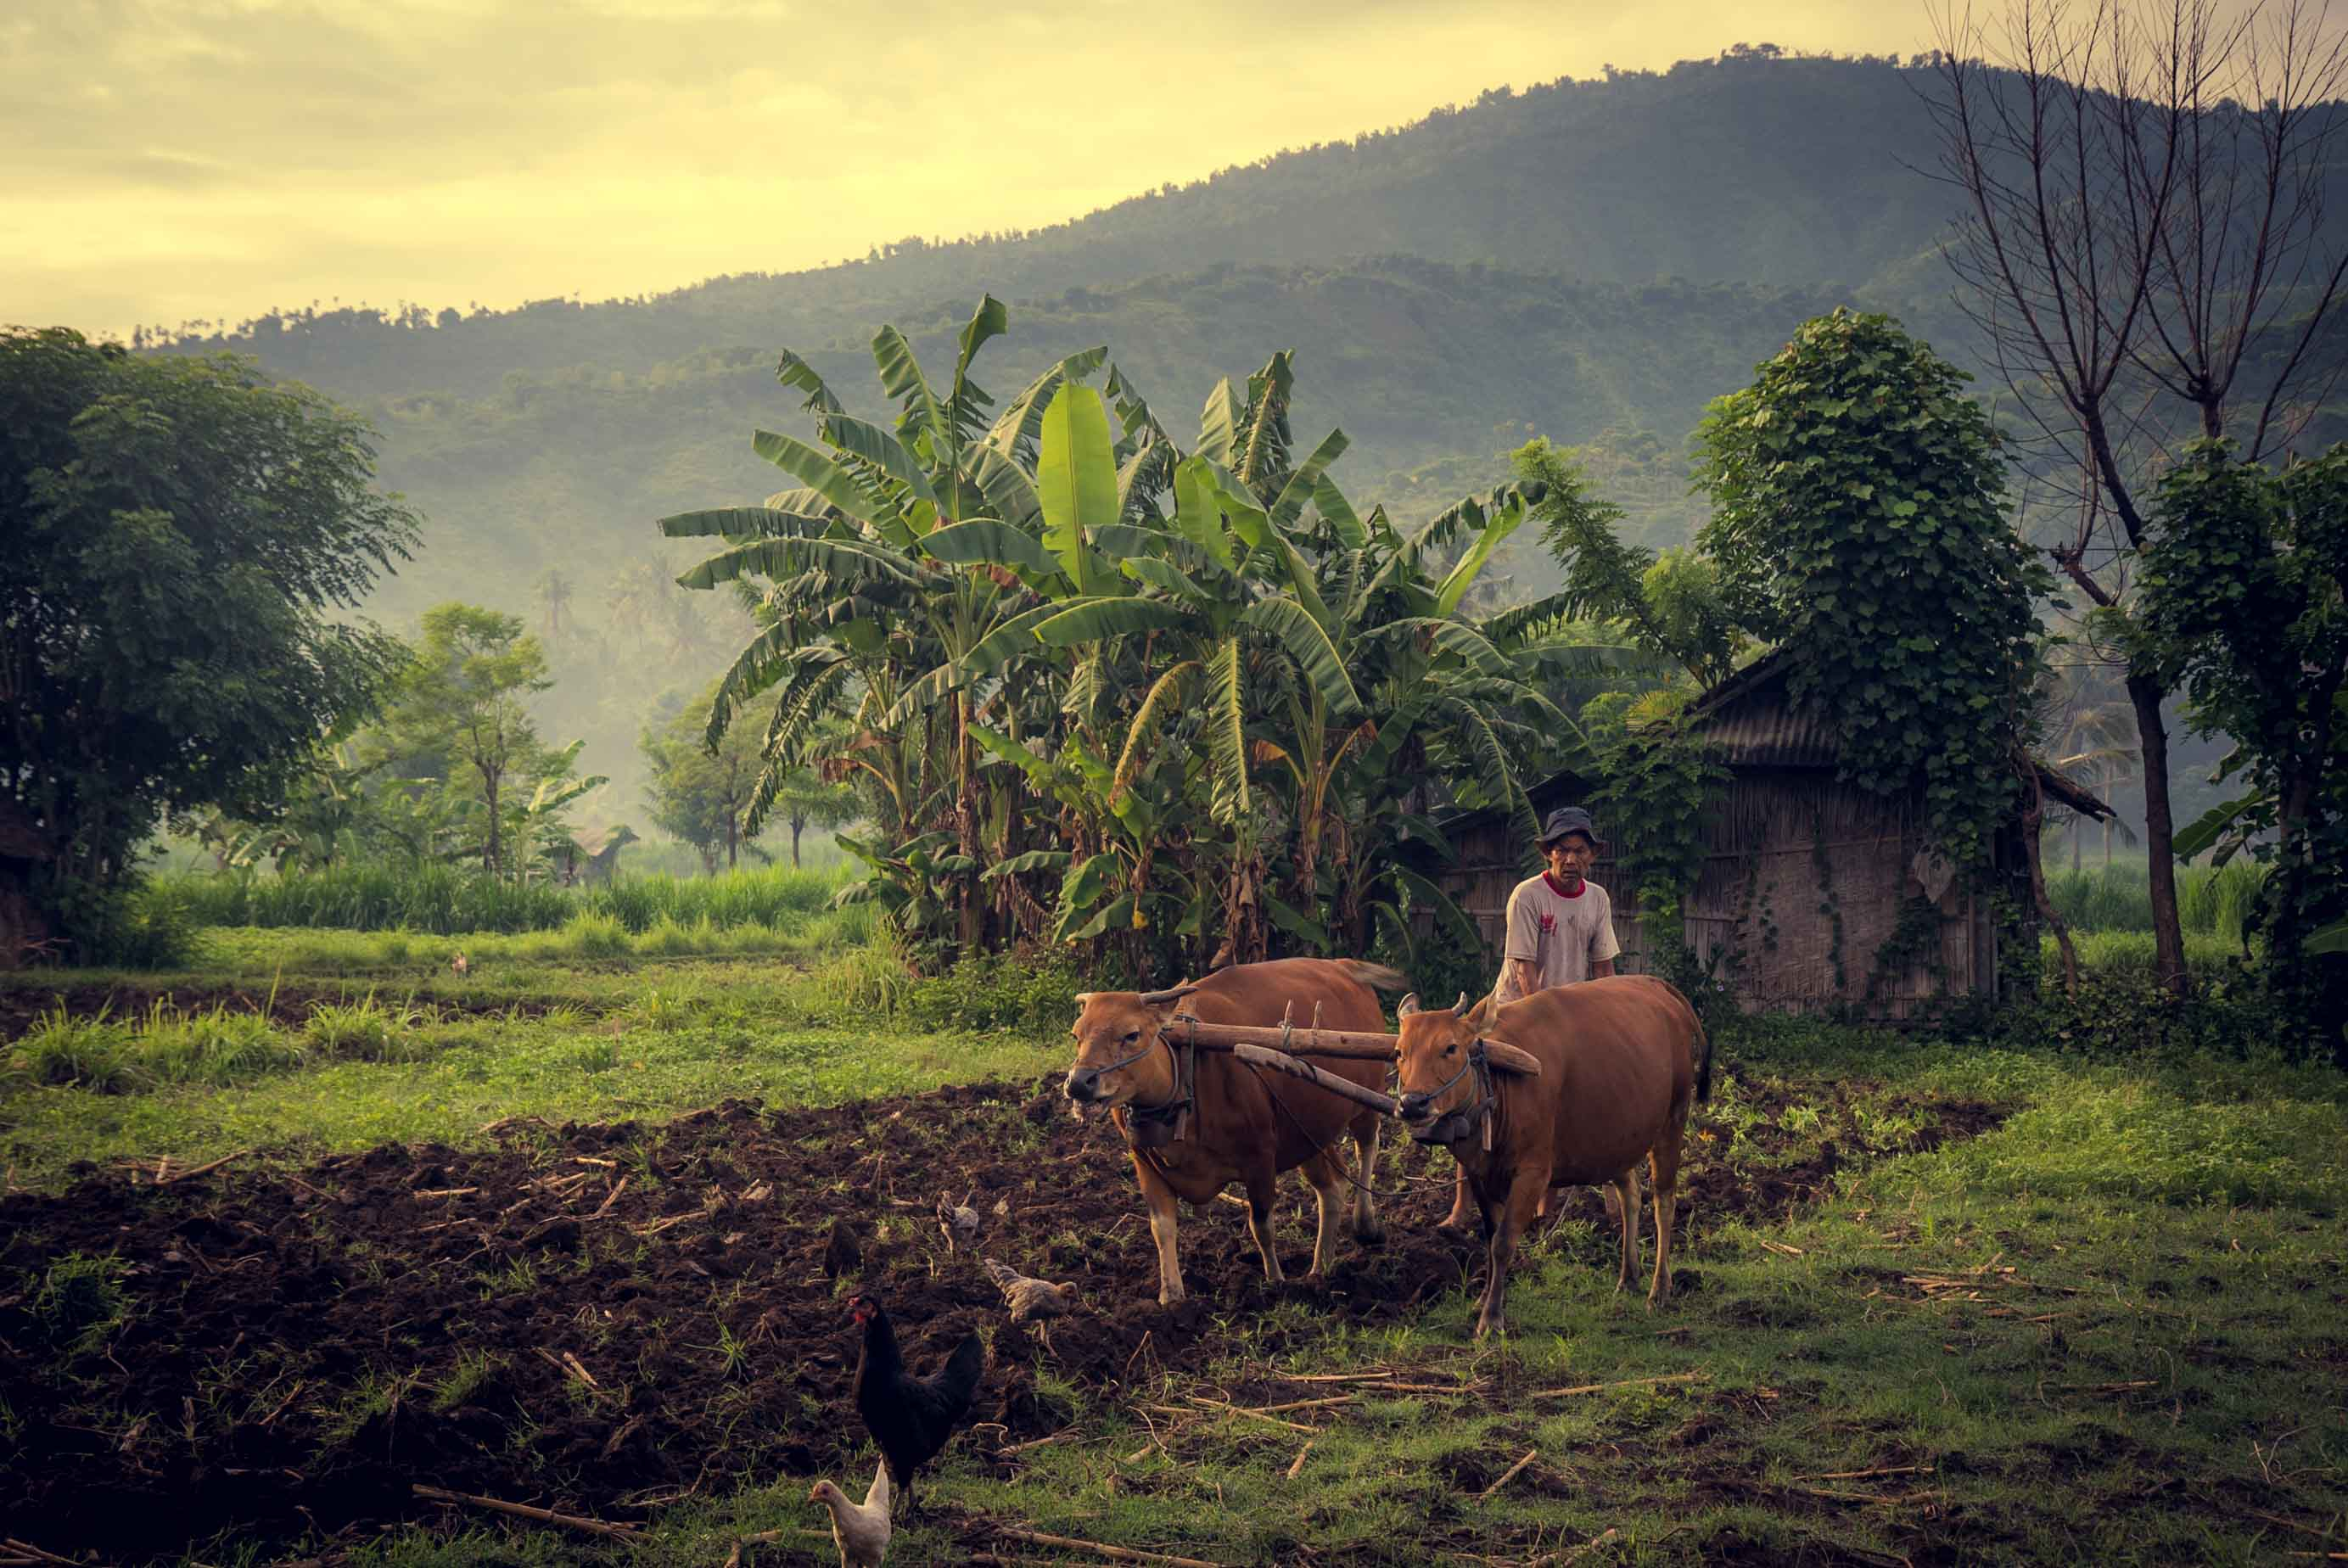 Bali, Amed, rice terrace, montagne, jungle, rizière, culture, Indonésie, Indonesia, vache, cow